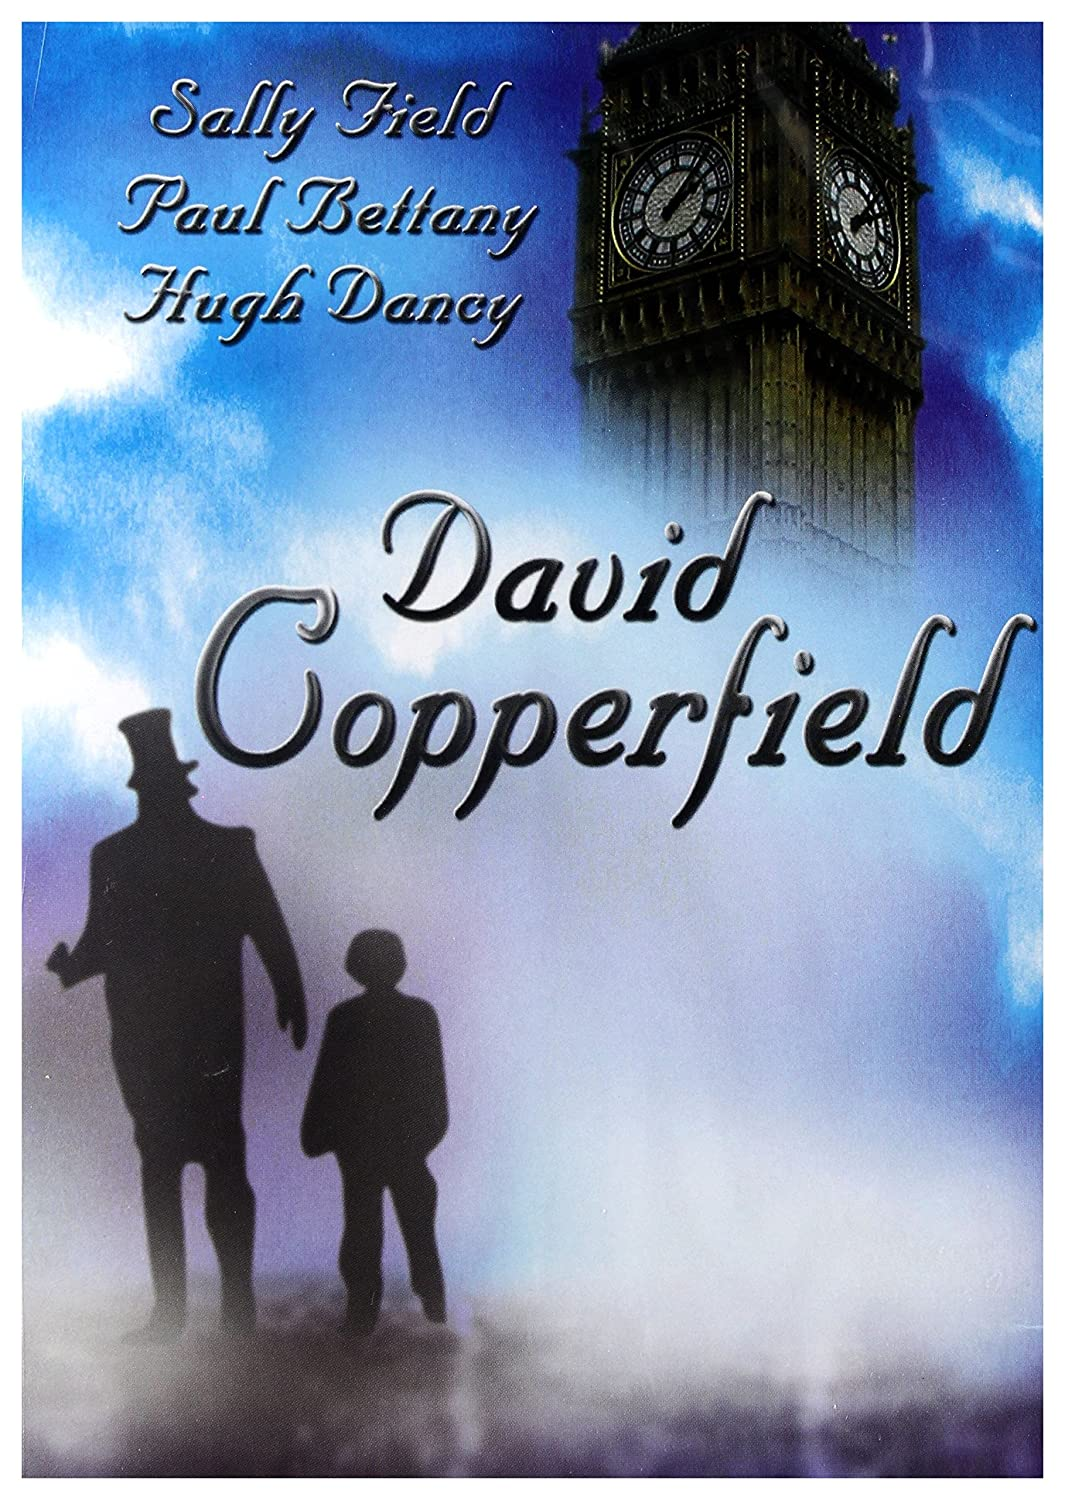 david copperfield dvd region 2 english audio co uk david copperfield dvd region 2 english audio co uk michael richards eileen atkins anthony andrews frank mccusker hugh dancy max dolbey